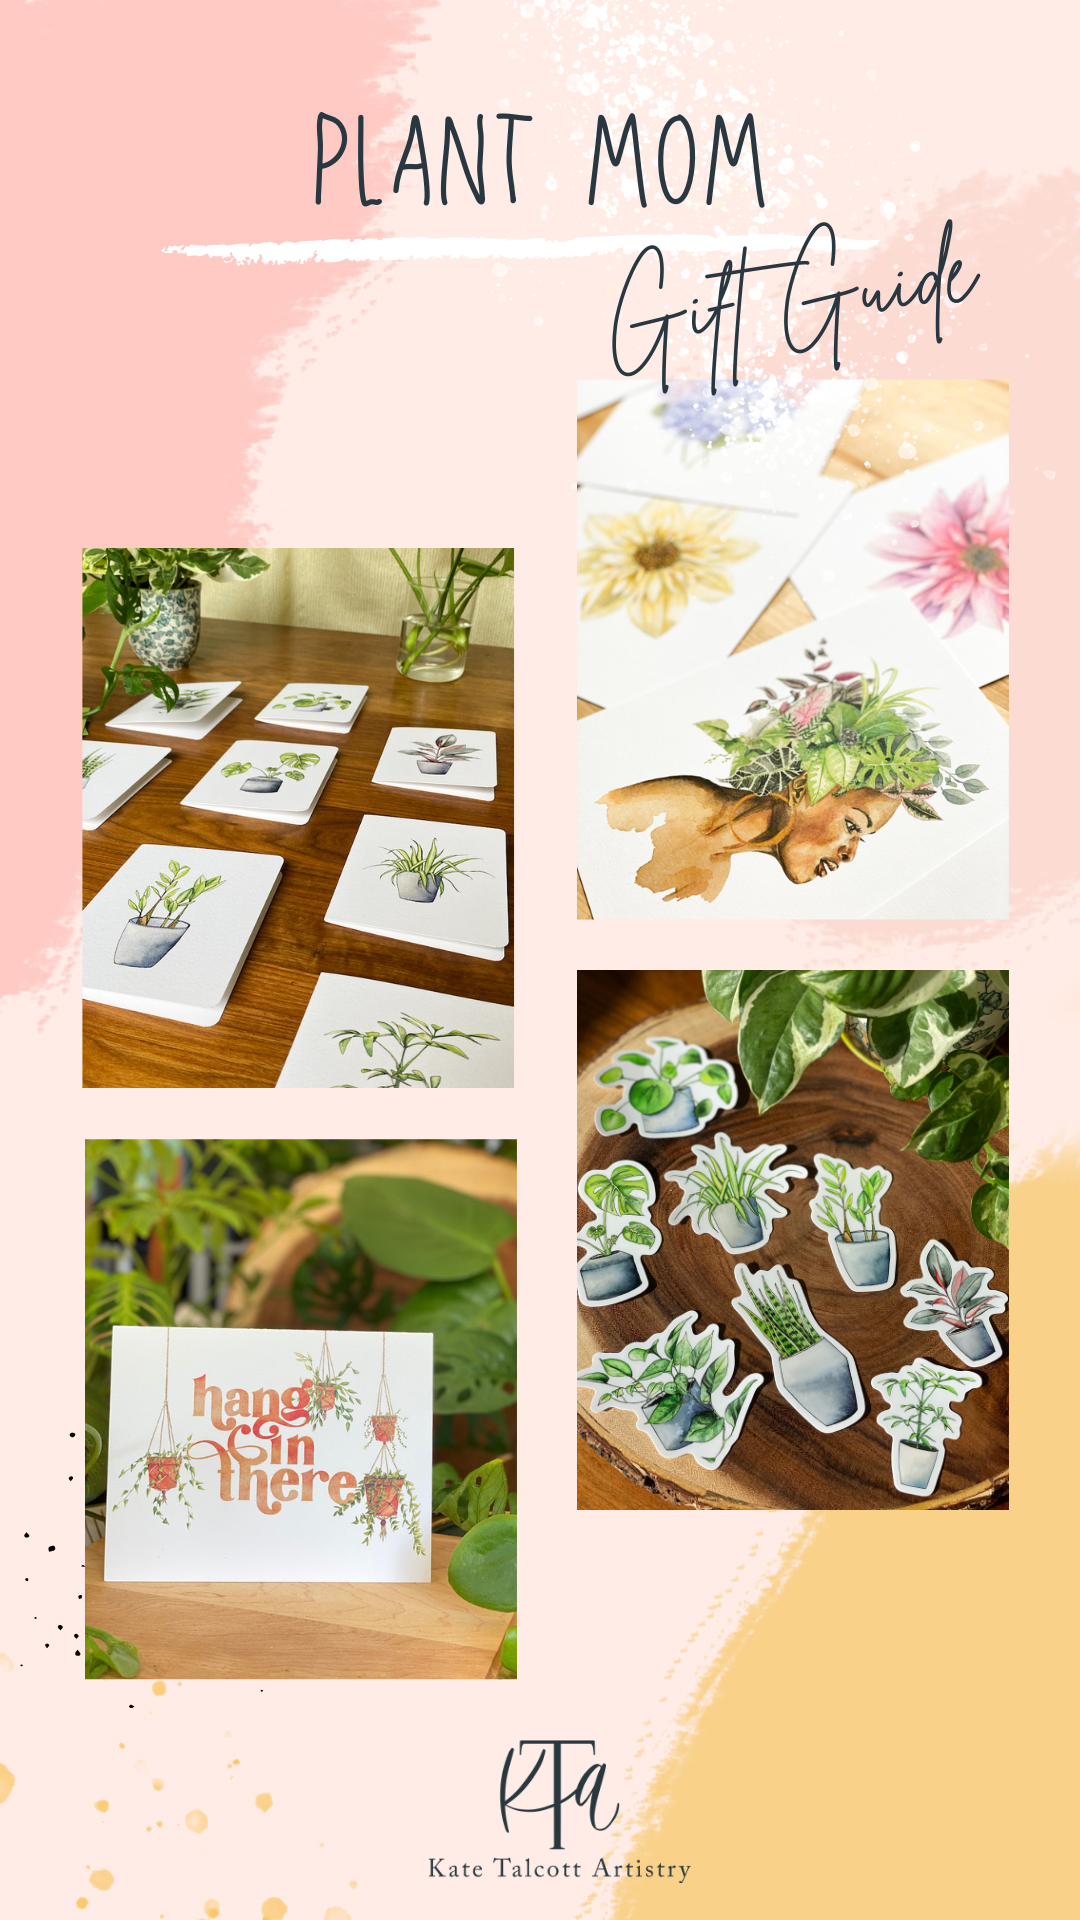 Plant lover cards, stickers, and wall art prints